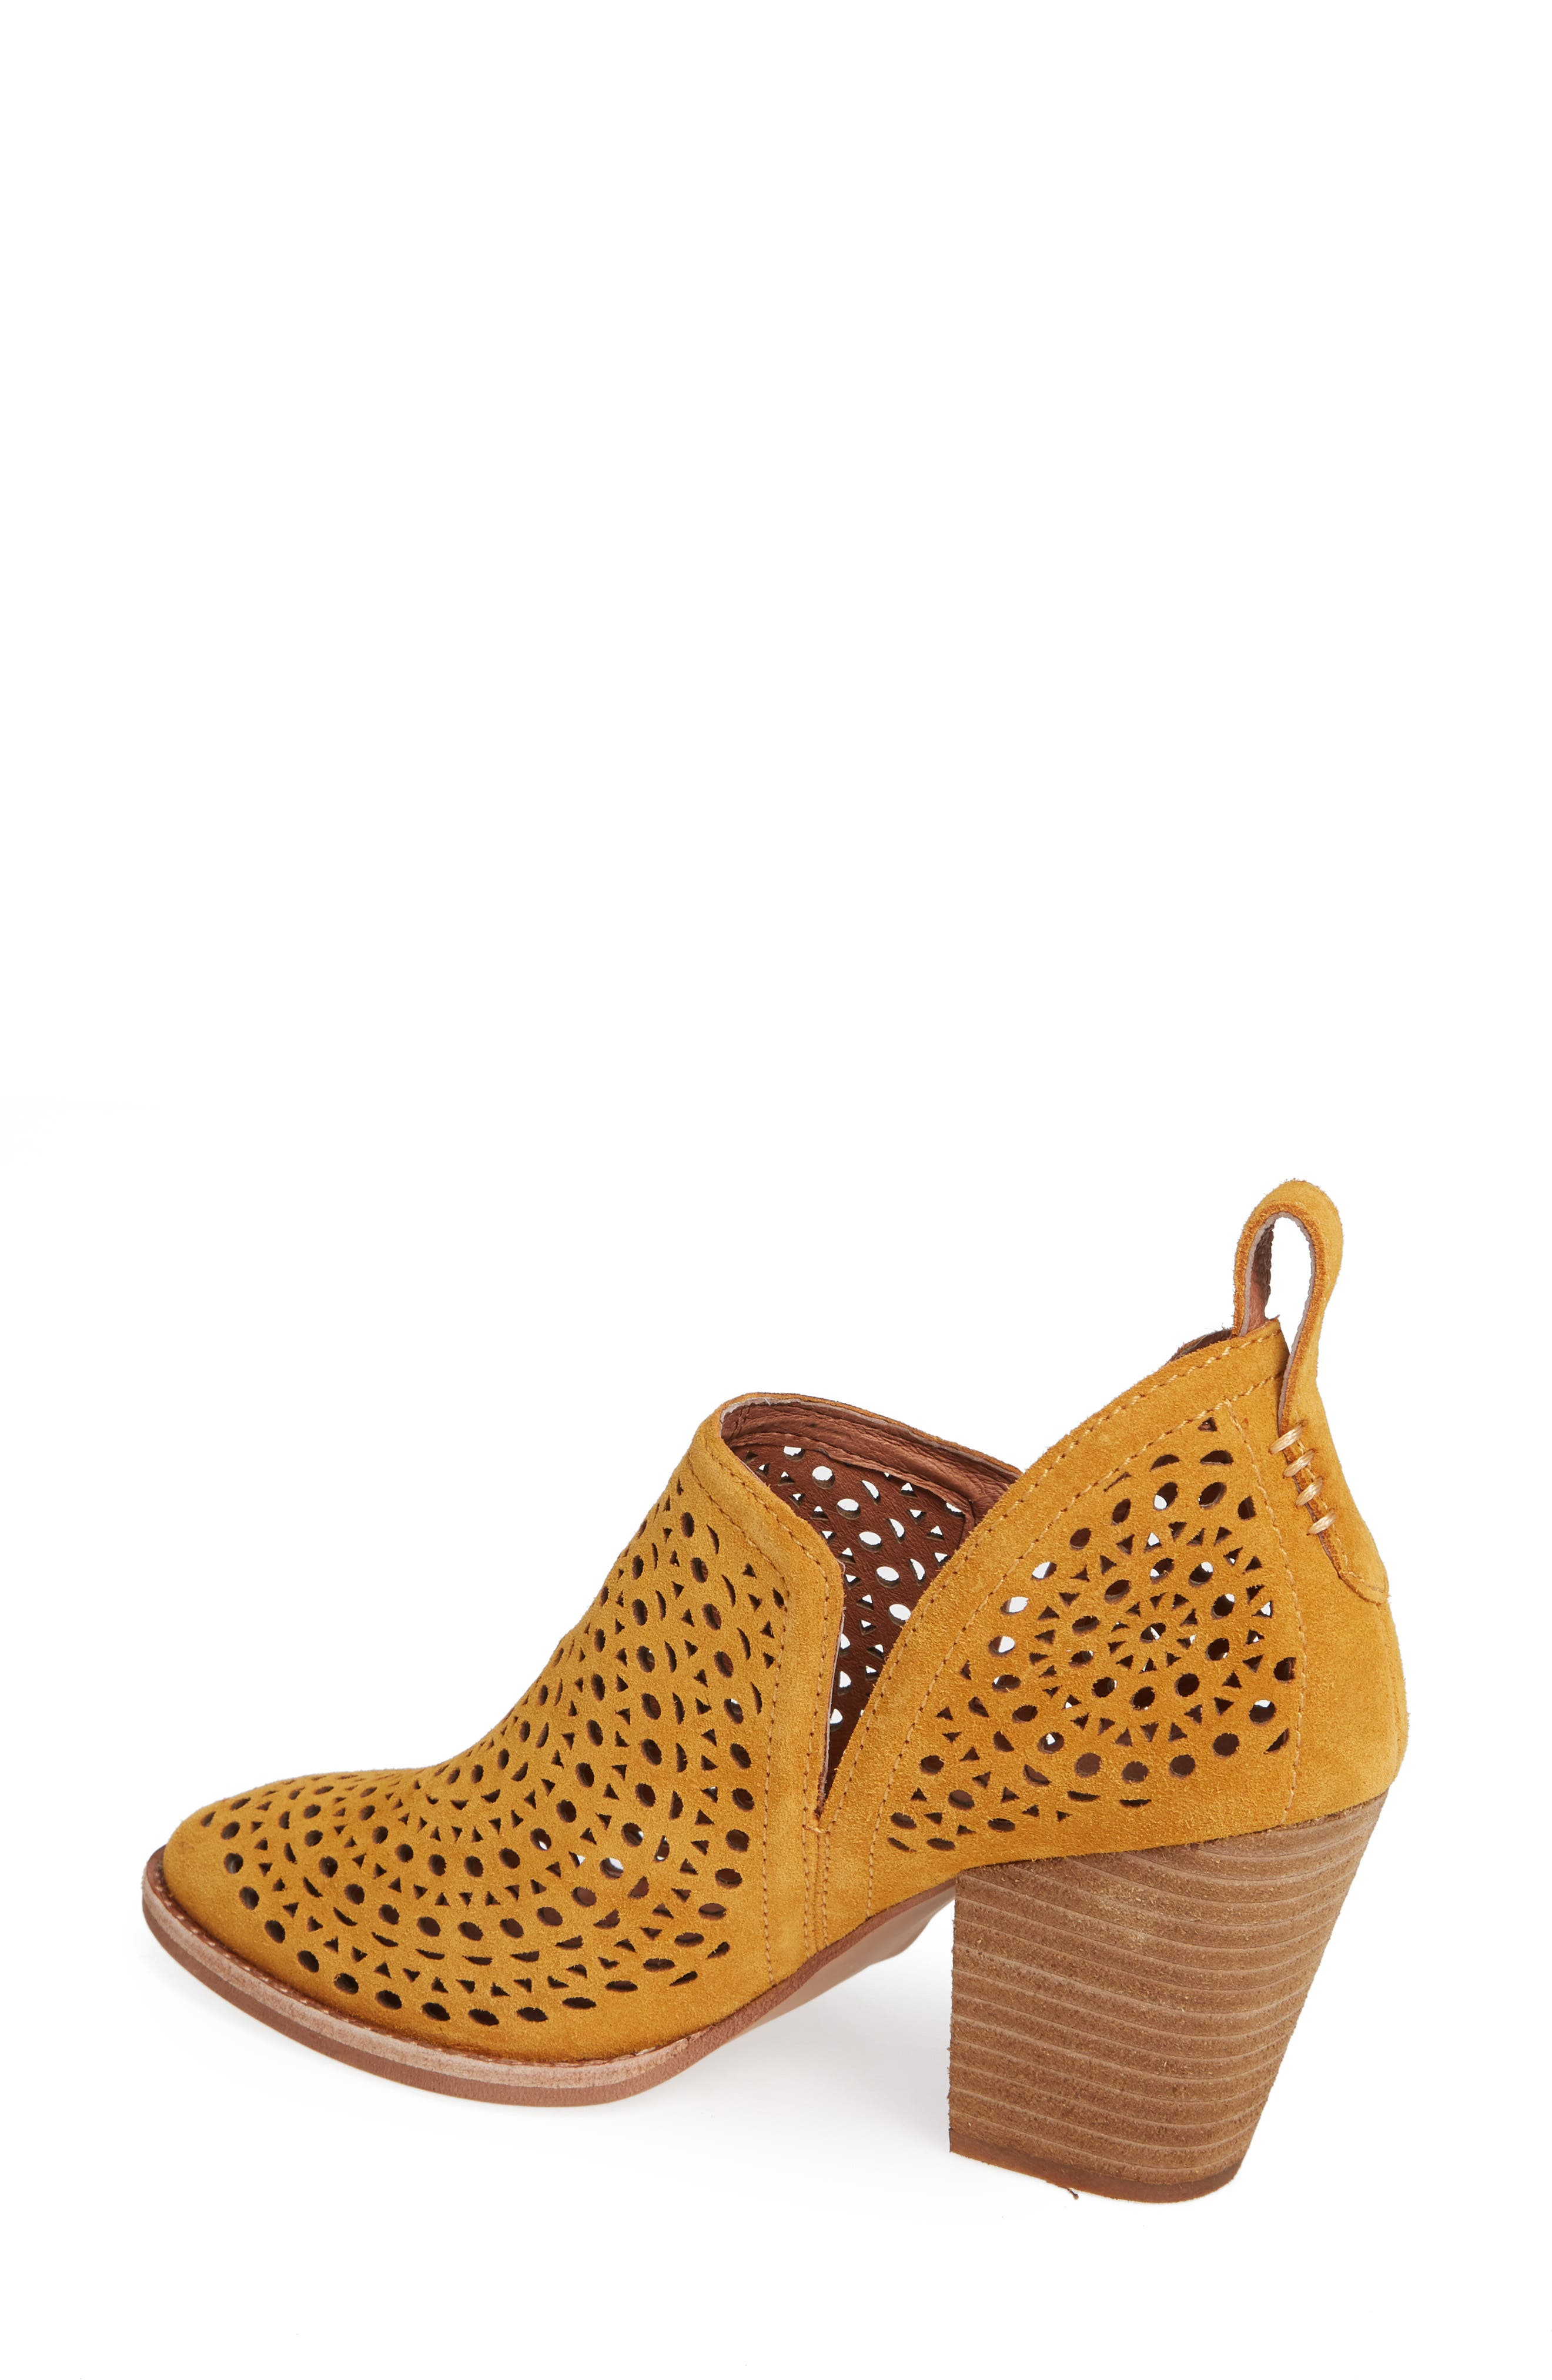 Rosalee Bootie,                             Alternate thumbnail 2, color,                             Mustard Suede